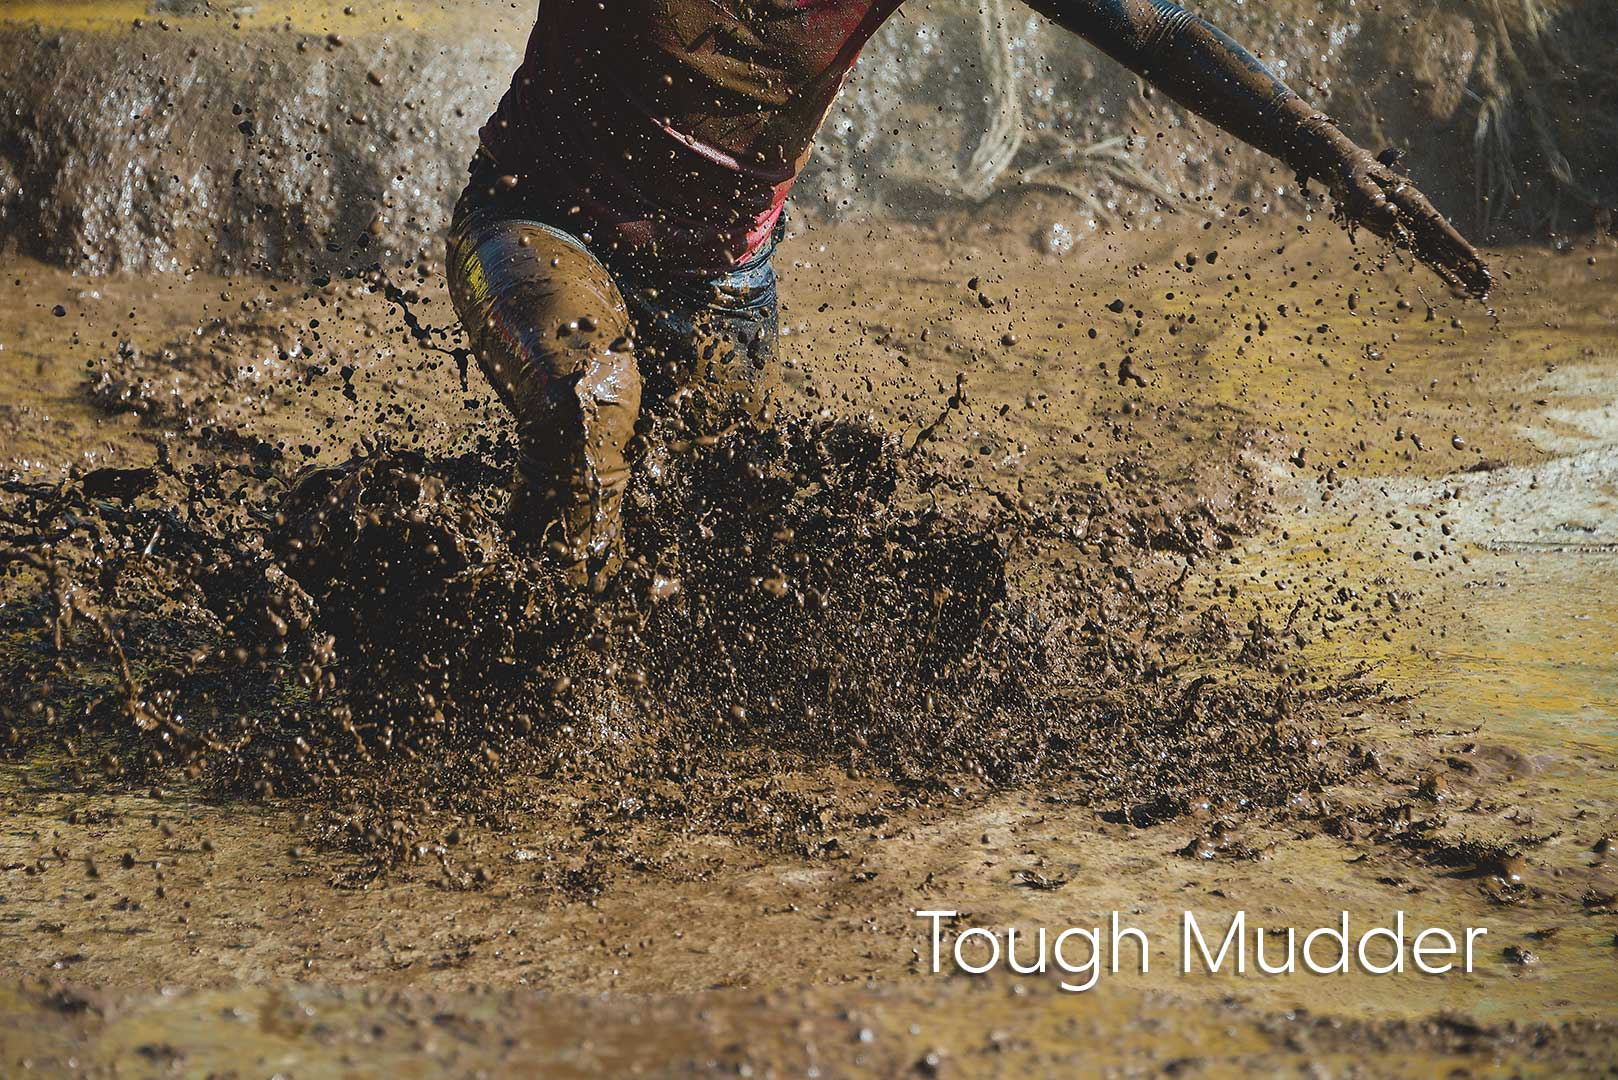 AMC WebCasts Challenging Tough Mudder Event in Philadelphia 1